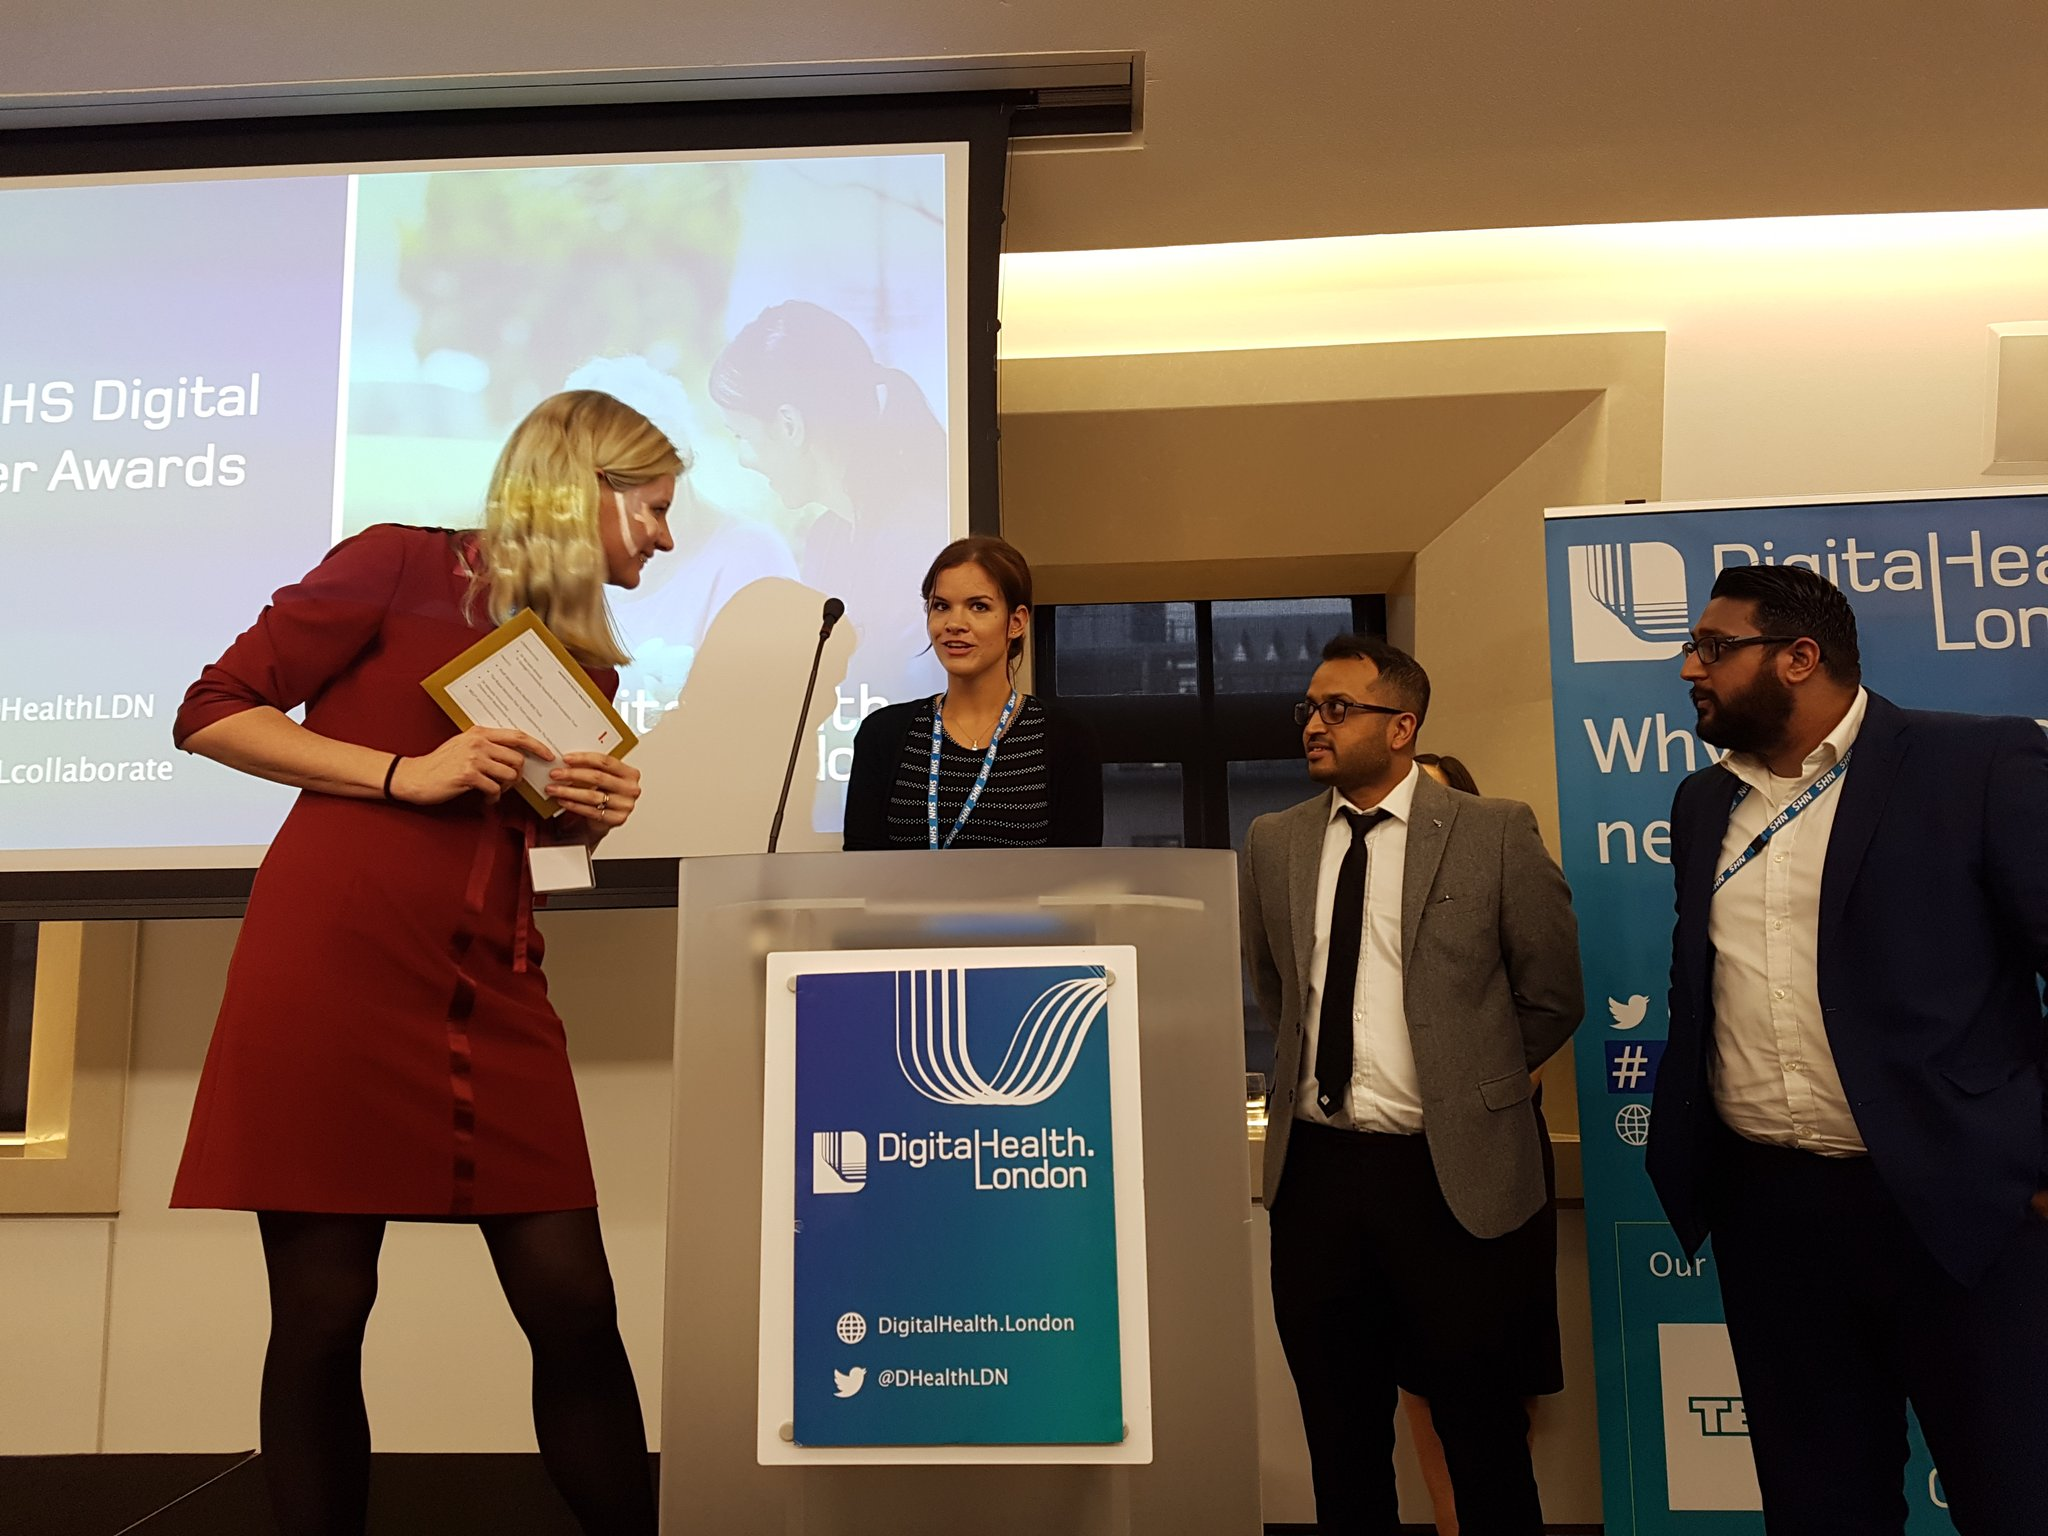 And the winner is... NELFT 'MyMind' project - Digital Innovation 2017 #DHLcollaborate https://t.co/ruNmhUNVOC